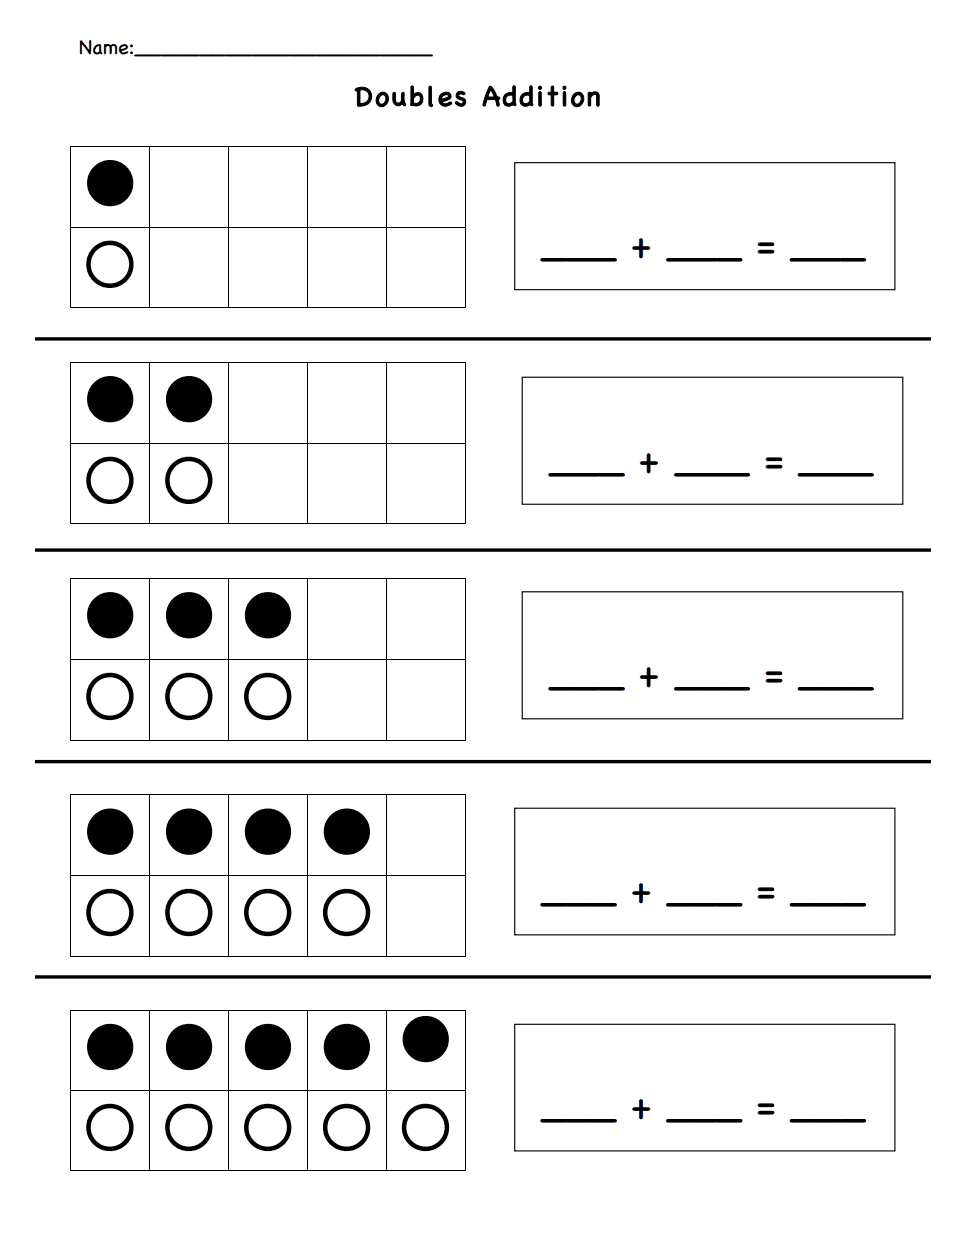 hight resolution of Doubles Addition.pdf - Google Drive   Doubles addition